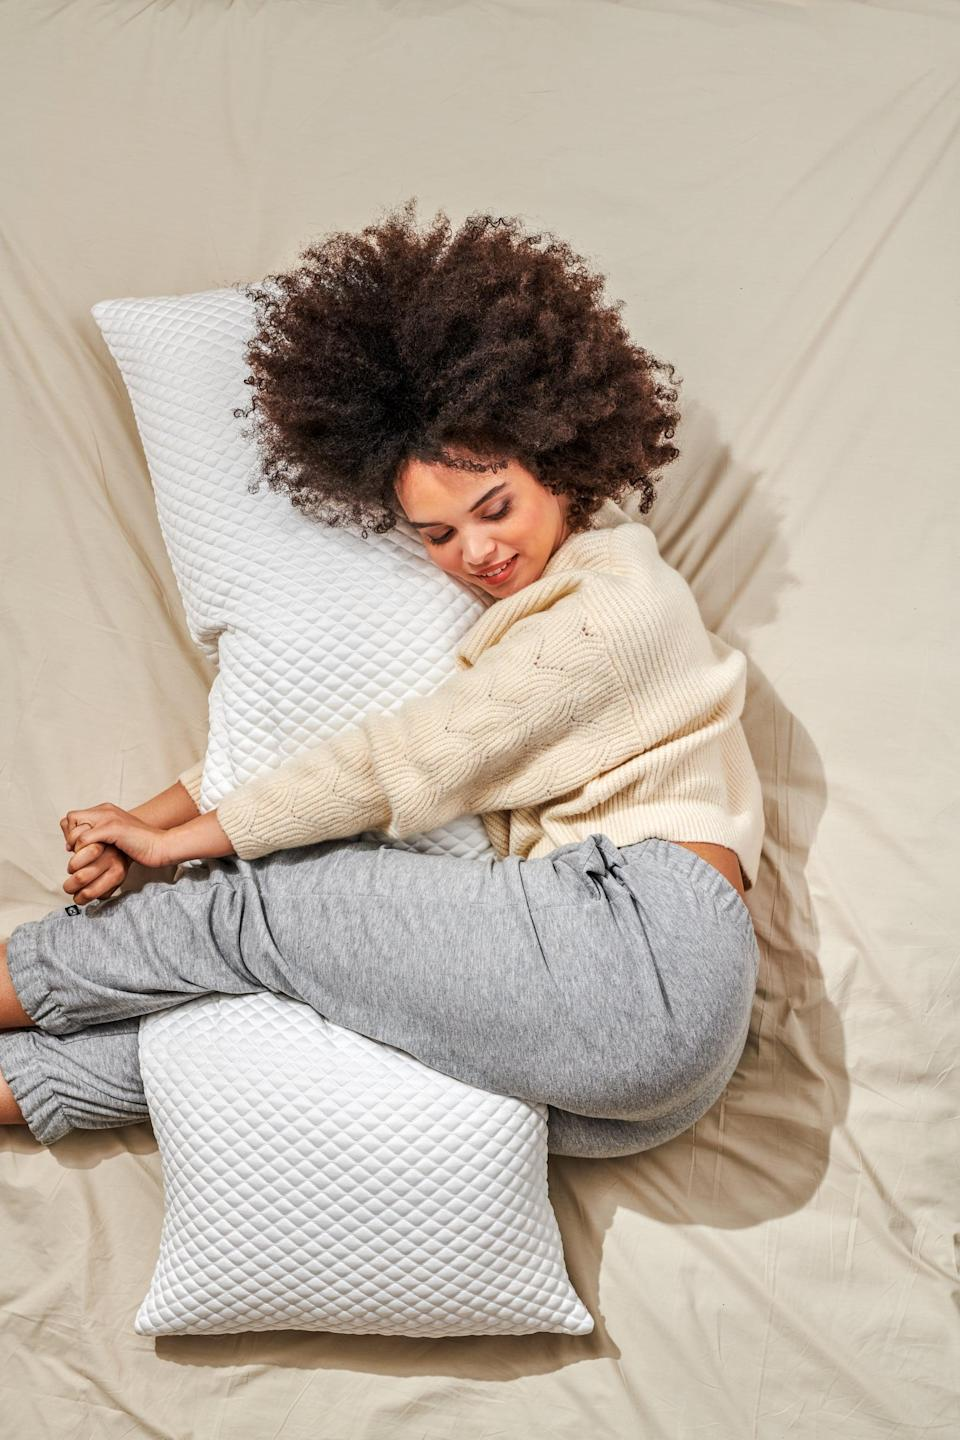 <p>The biggest game changer for my quality of sleep was the <span>Pluto Puff Pillow</span> ($95), an extremely comfortable body pillow. I'd previously been using a <span>pregnancy pillow</span> but found it too stiff, especially when I would try to reposition in the middle of the night. In contract, the Puff is a dream to hug at night! At 12 pounds, 21' wide by 54' long, it provides just the right amount of side and leg support leading to less middle of the night aches (I was previously waking up every few hours with very sore hips.) </p>